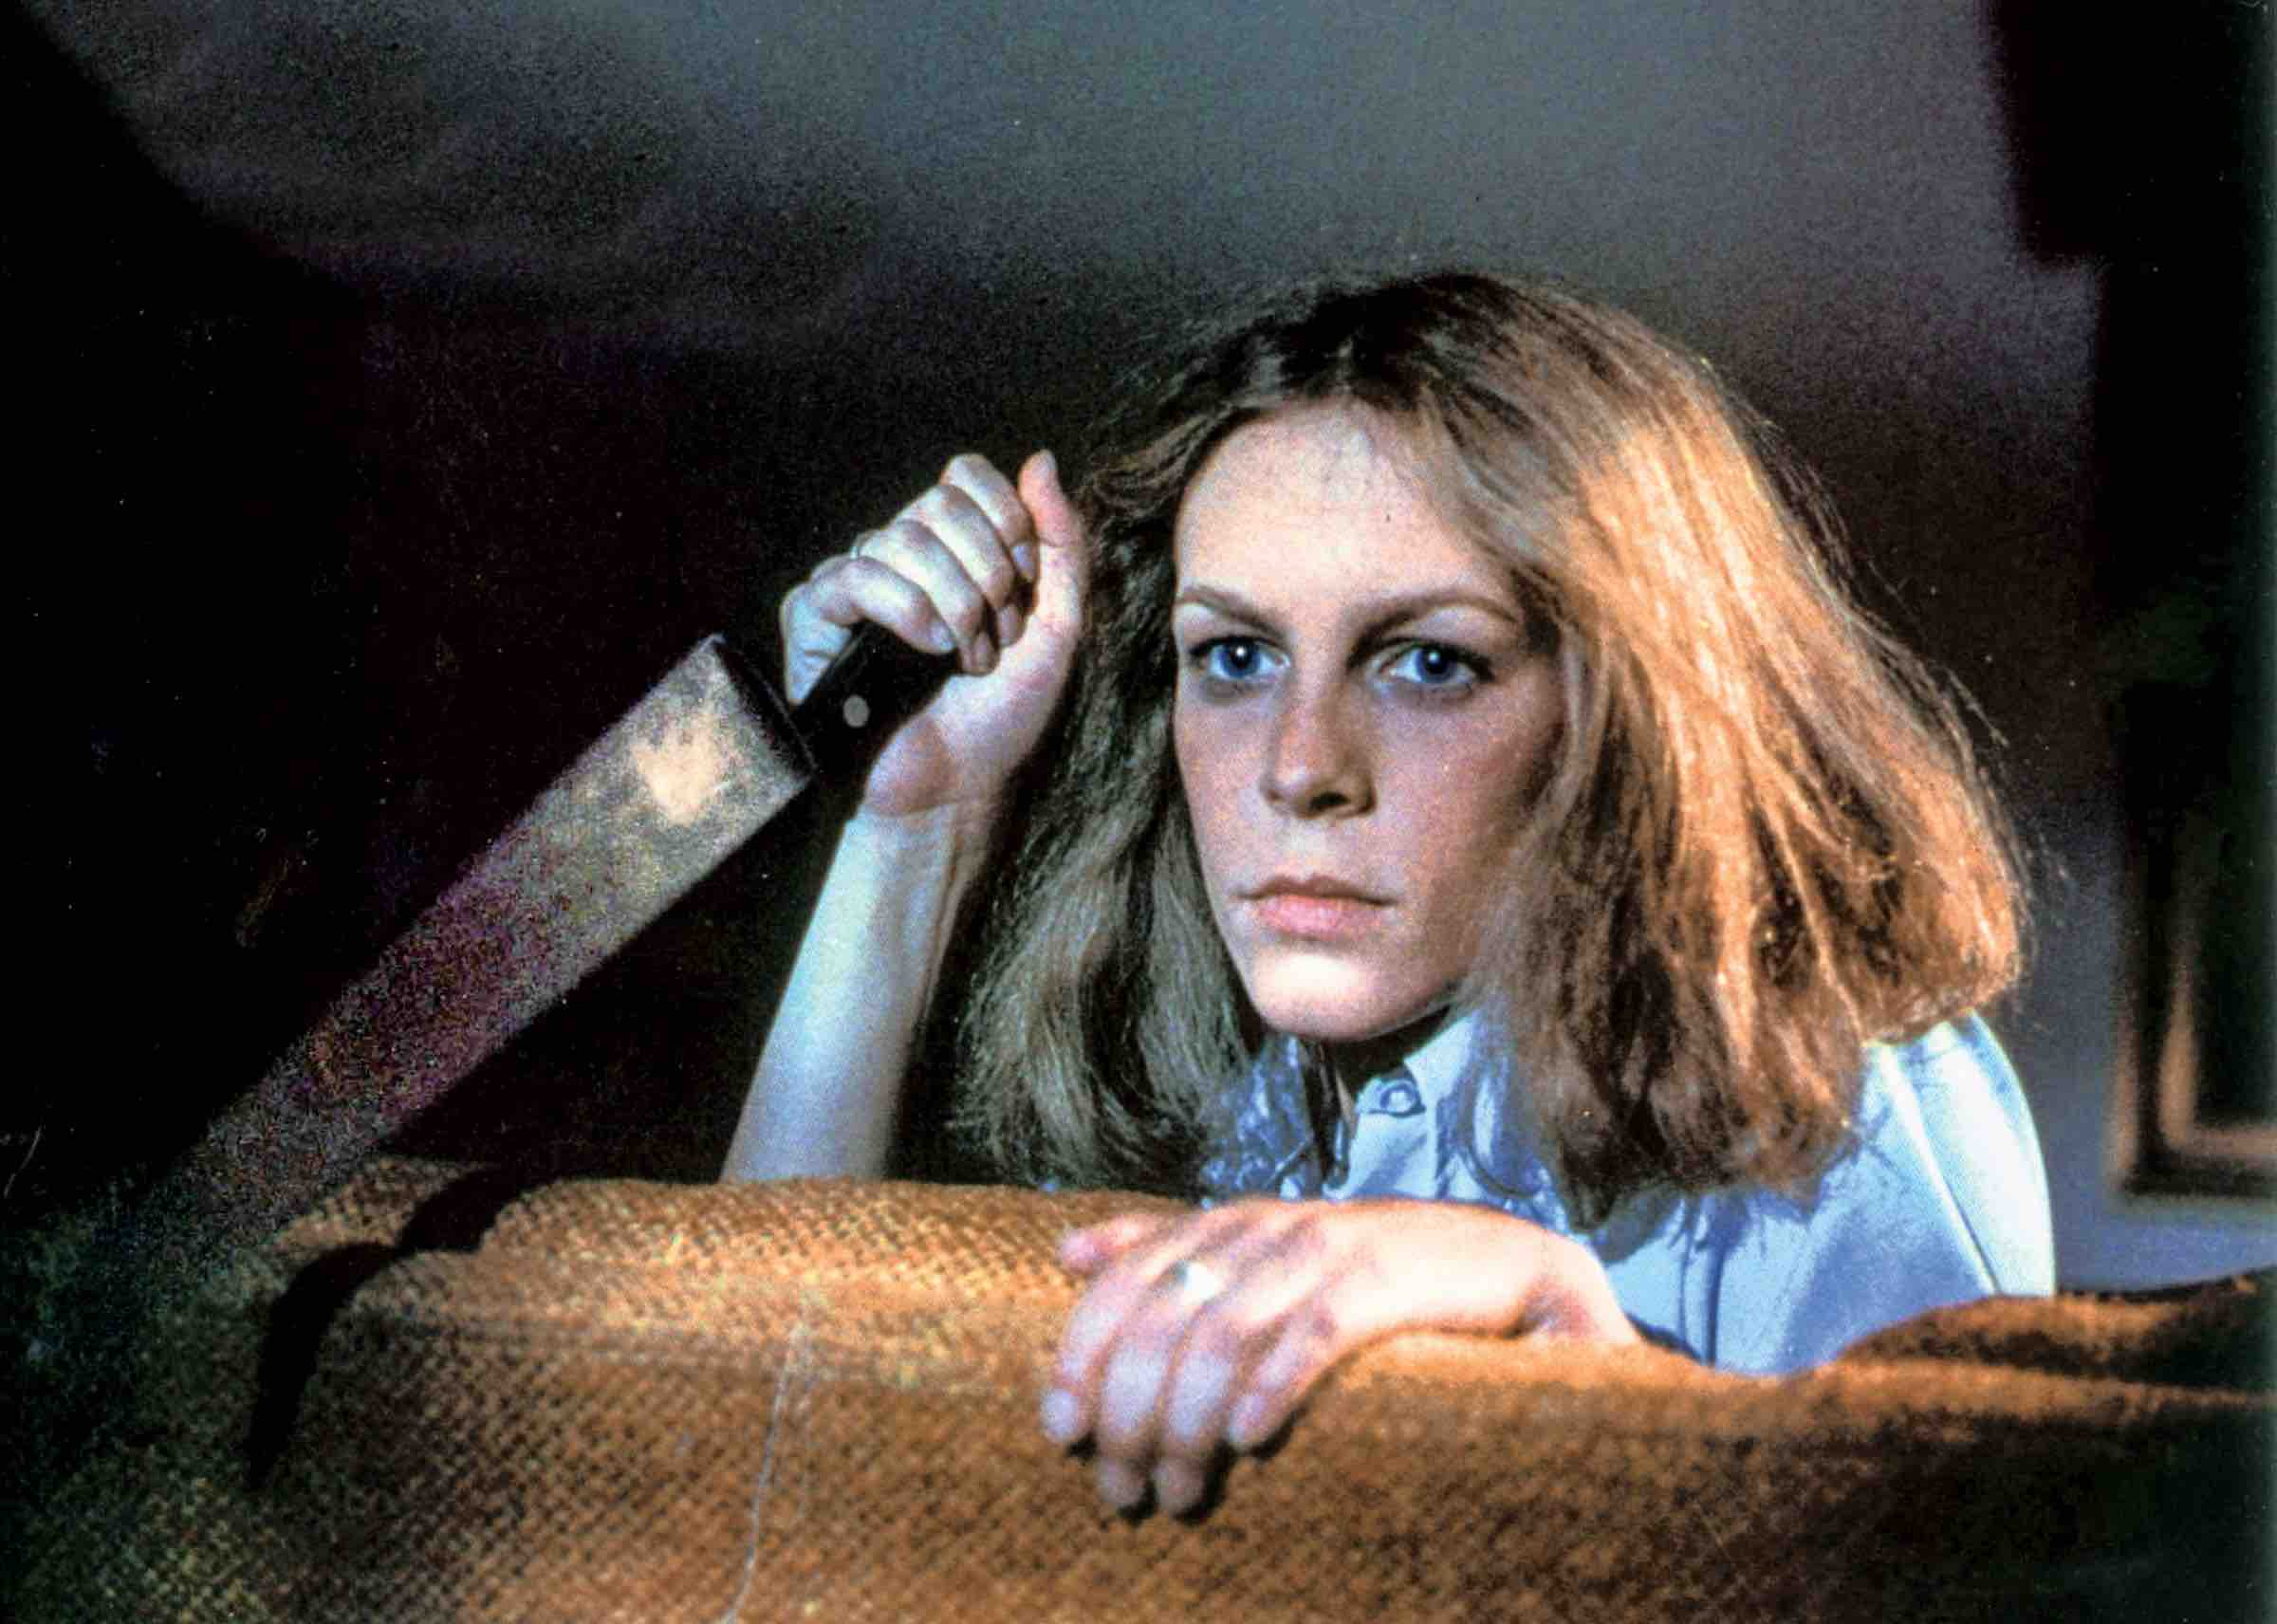 Are you able to take on one of the most terrifying movie villains, Michael Myers from 'Halloween'? Instead of hiding in backyards, take our quiz now.